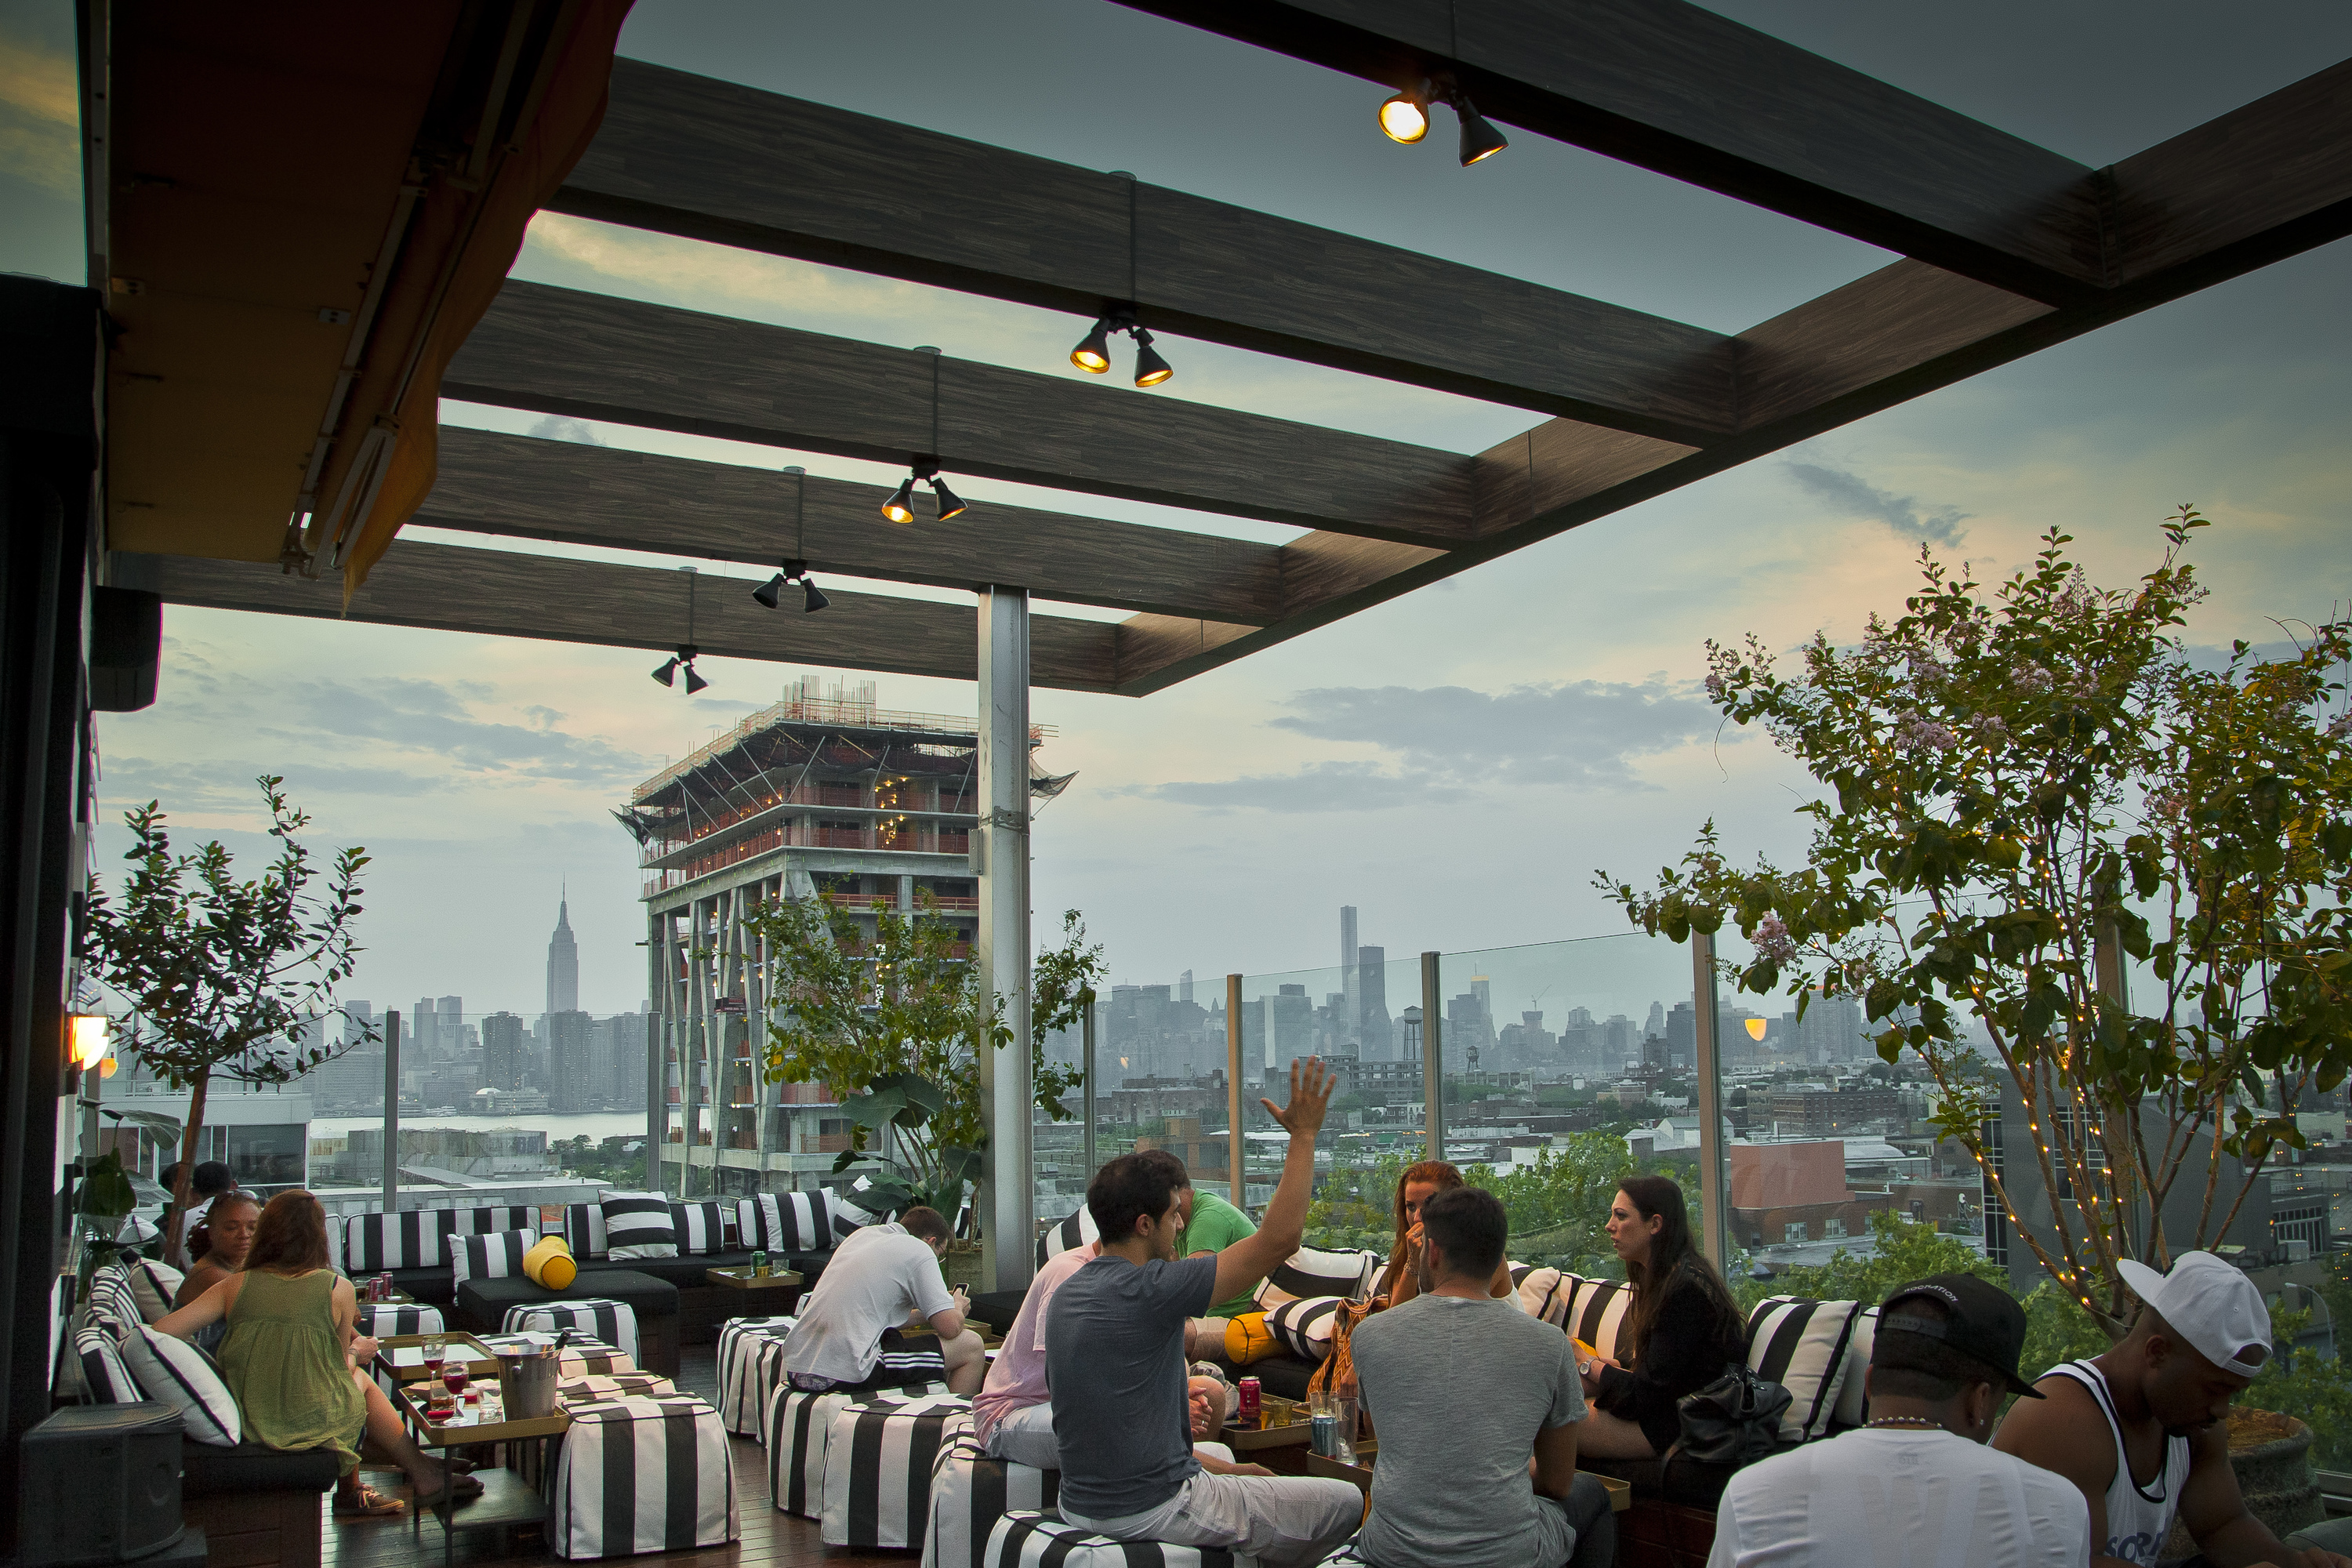 Best waterfront restaurants nyc to take in great city views for Best fish and chips nyc